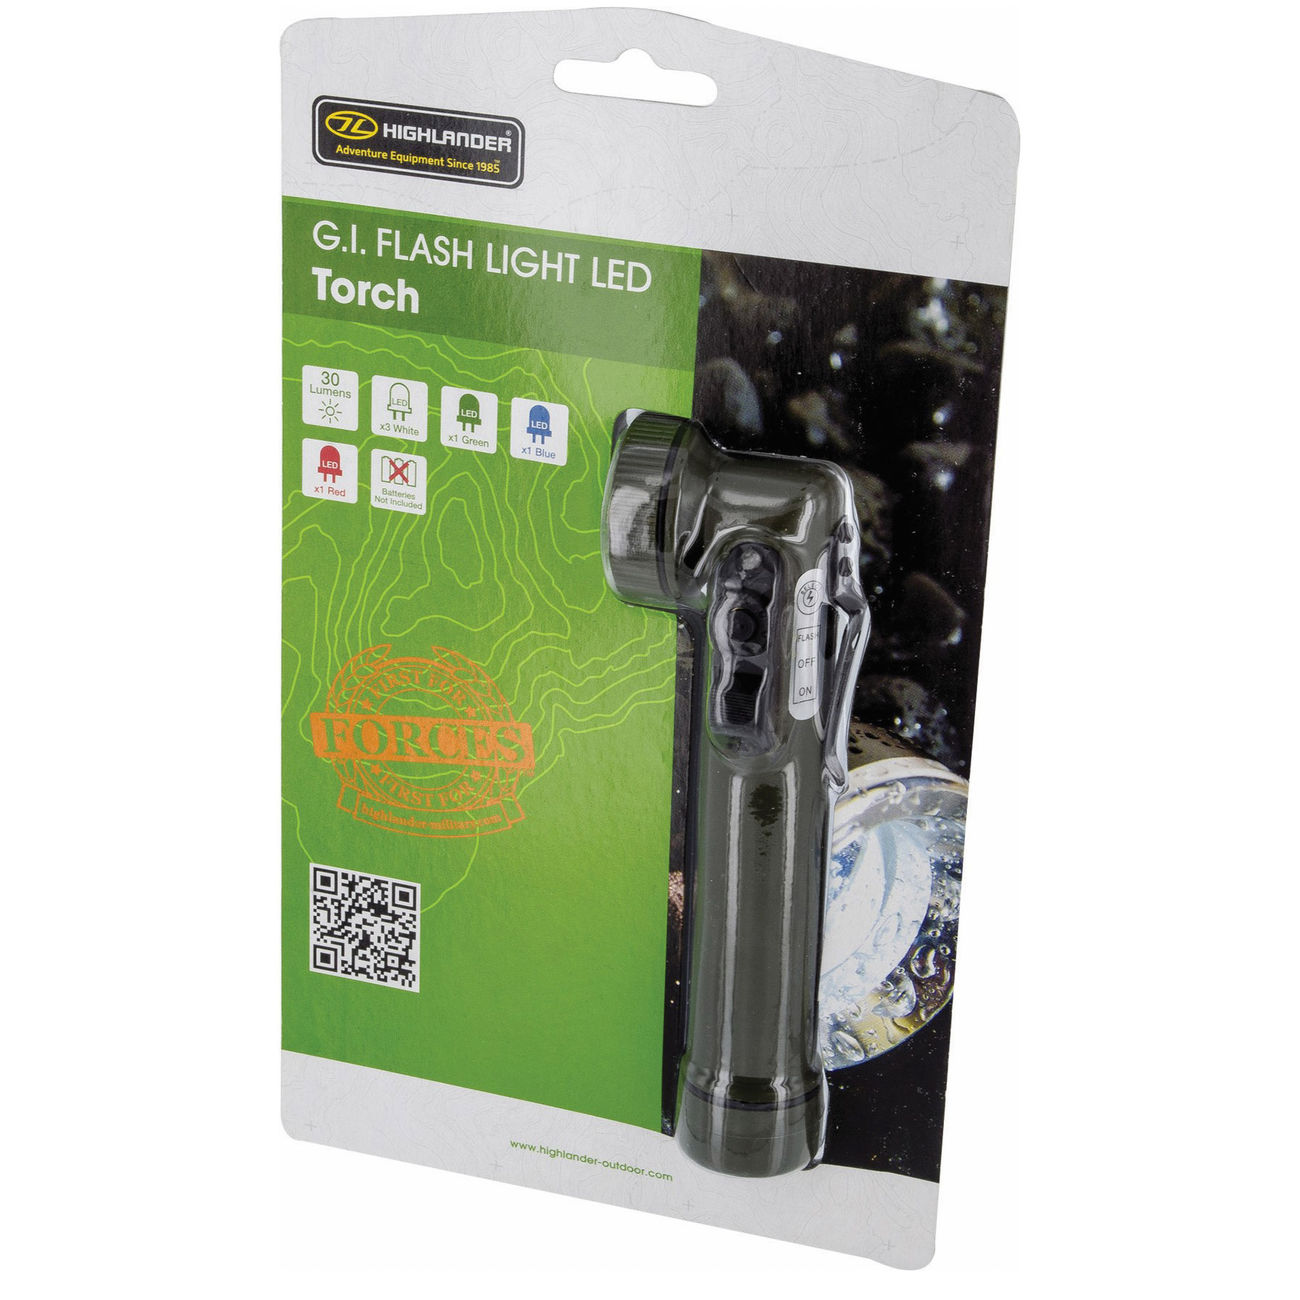 Highlander LED Winkelstablampe G.I. Flashlight Torch 30 Lumen oliv 1